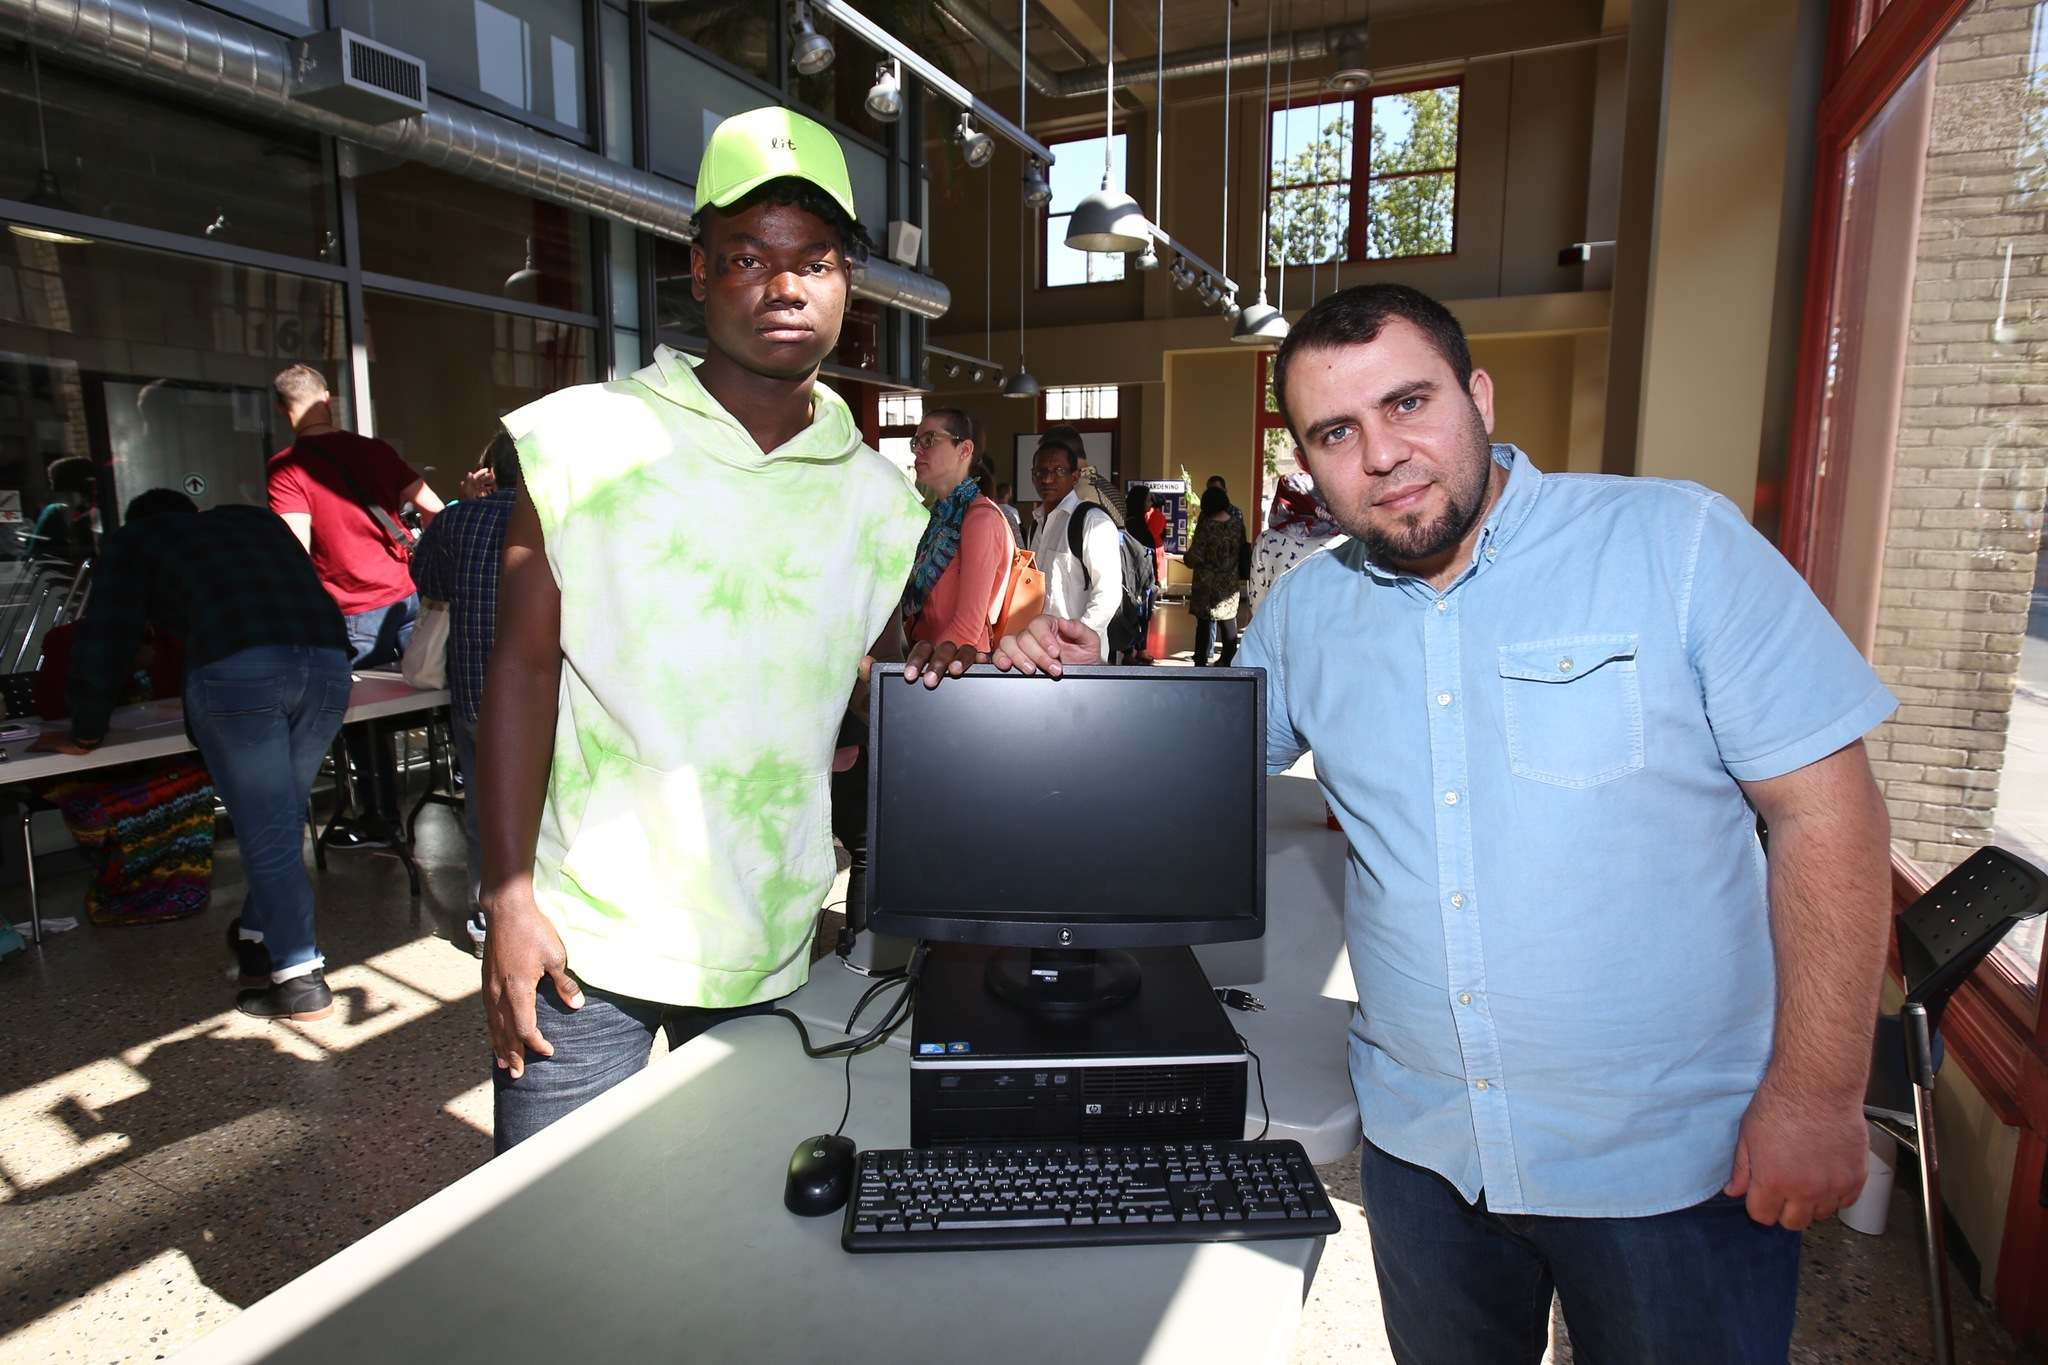 MIKE DEAL / WINNIPEG FREE PRESS</p><p>Teacher Hammoud Jumaa (right) and Nicson Yamondo (left) who is one of the 71 students graduating from Living English for Employment (LEE) at Red River College. He took a computer class as part of the program and now is able to keep it the thanks to Computers for Schools that donated them. </p>